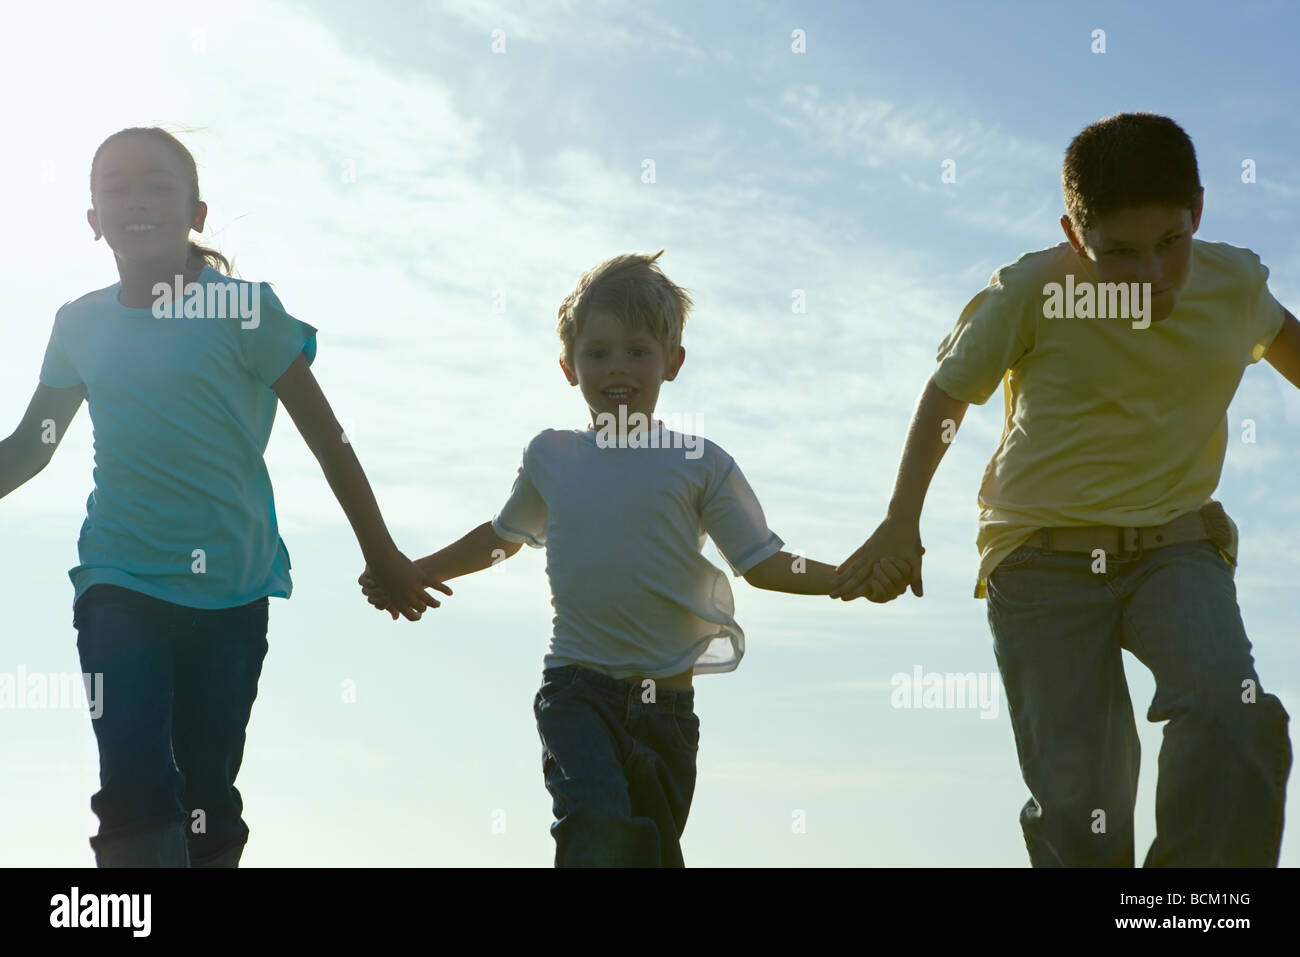 Three children running, holding hands, backlit - Stock Image